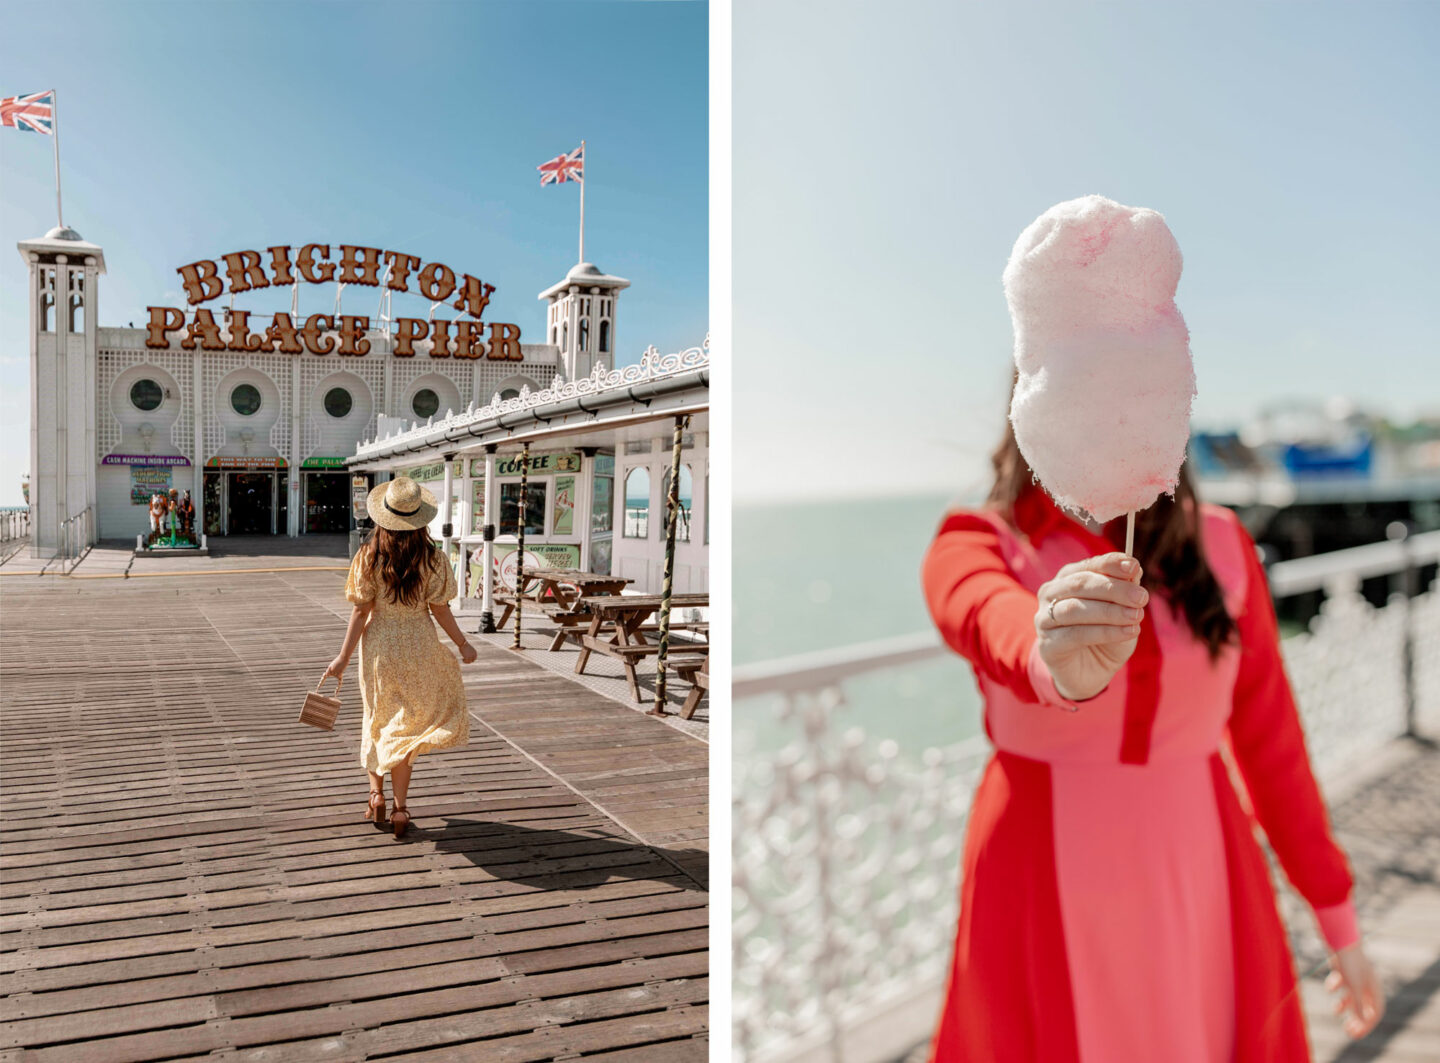 things-to-do-in-brighton-Bucket-list--Instagram-Story-Template--kelseyinlondon-Kelsey-Heinrichs-brighton_palace_pier.jpg